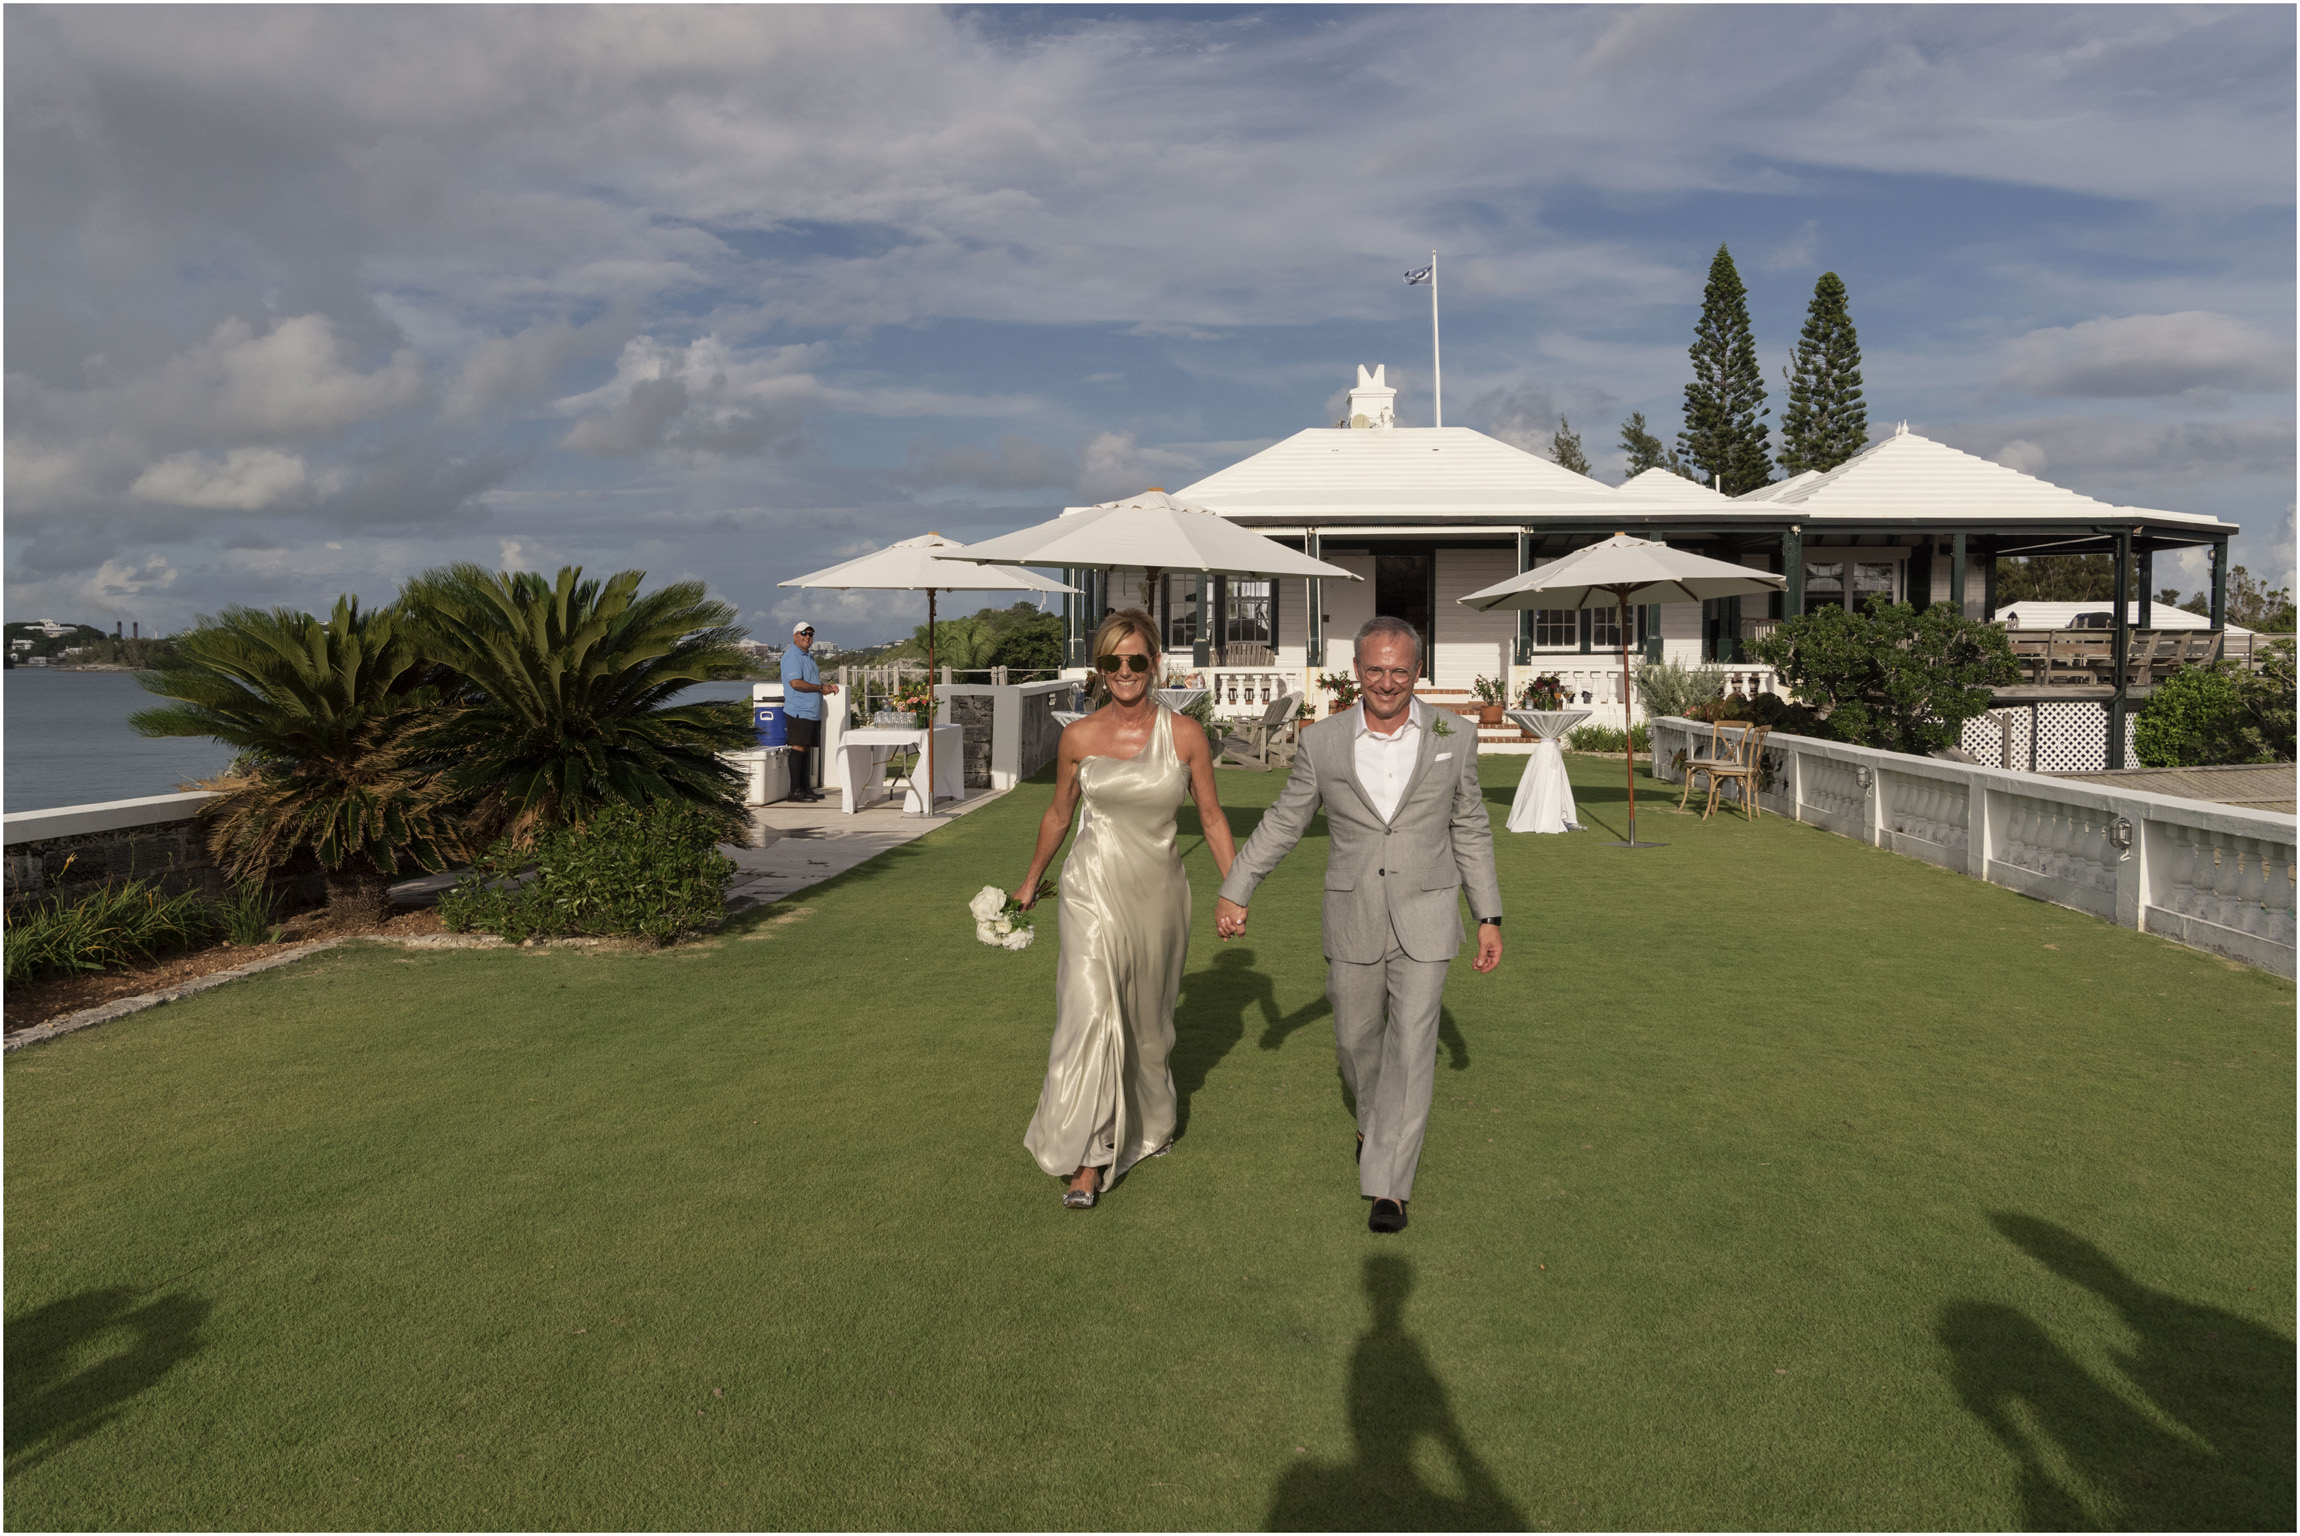 ©FianderFoto_Bermuda_Wedding_Photographer_Long_Island_Bermuda_Nancy_Ray_059.jpg